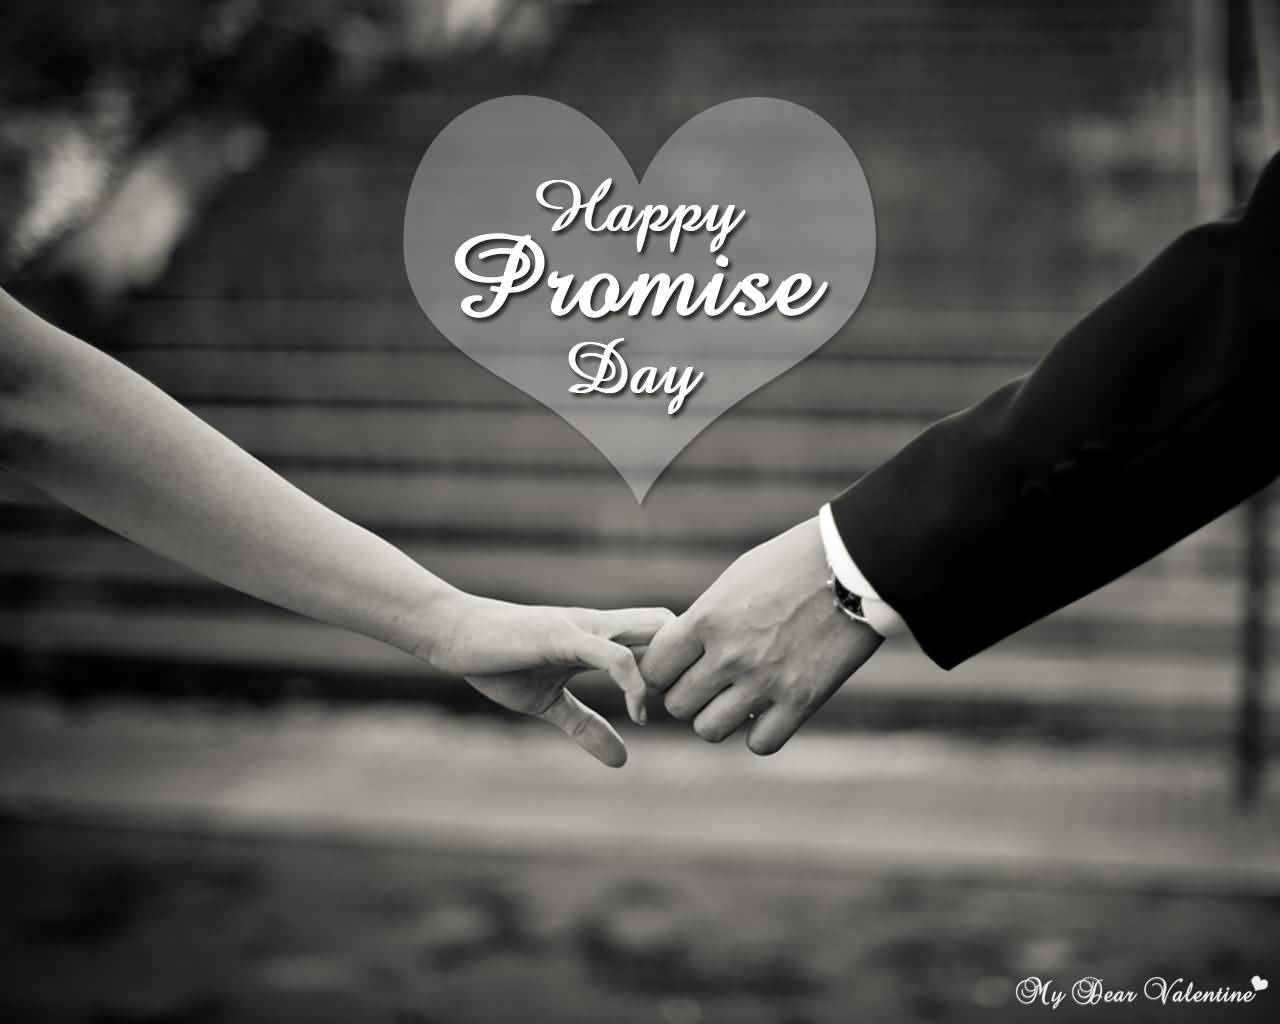 Happy Promise Day Quotes For Friends: 55 Most Beautiful Happy Promise Day 2017 Wish Pictures And